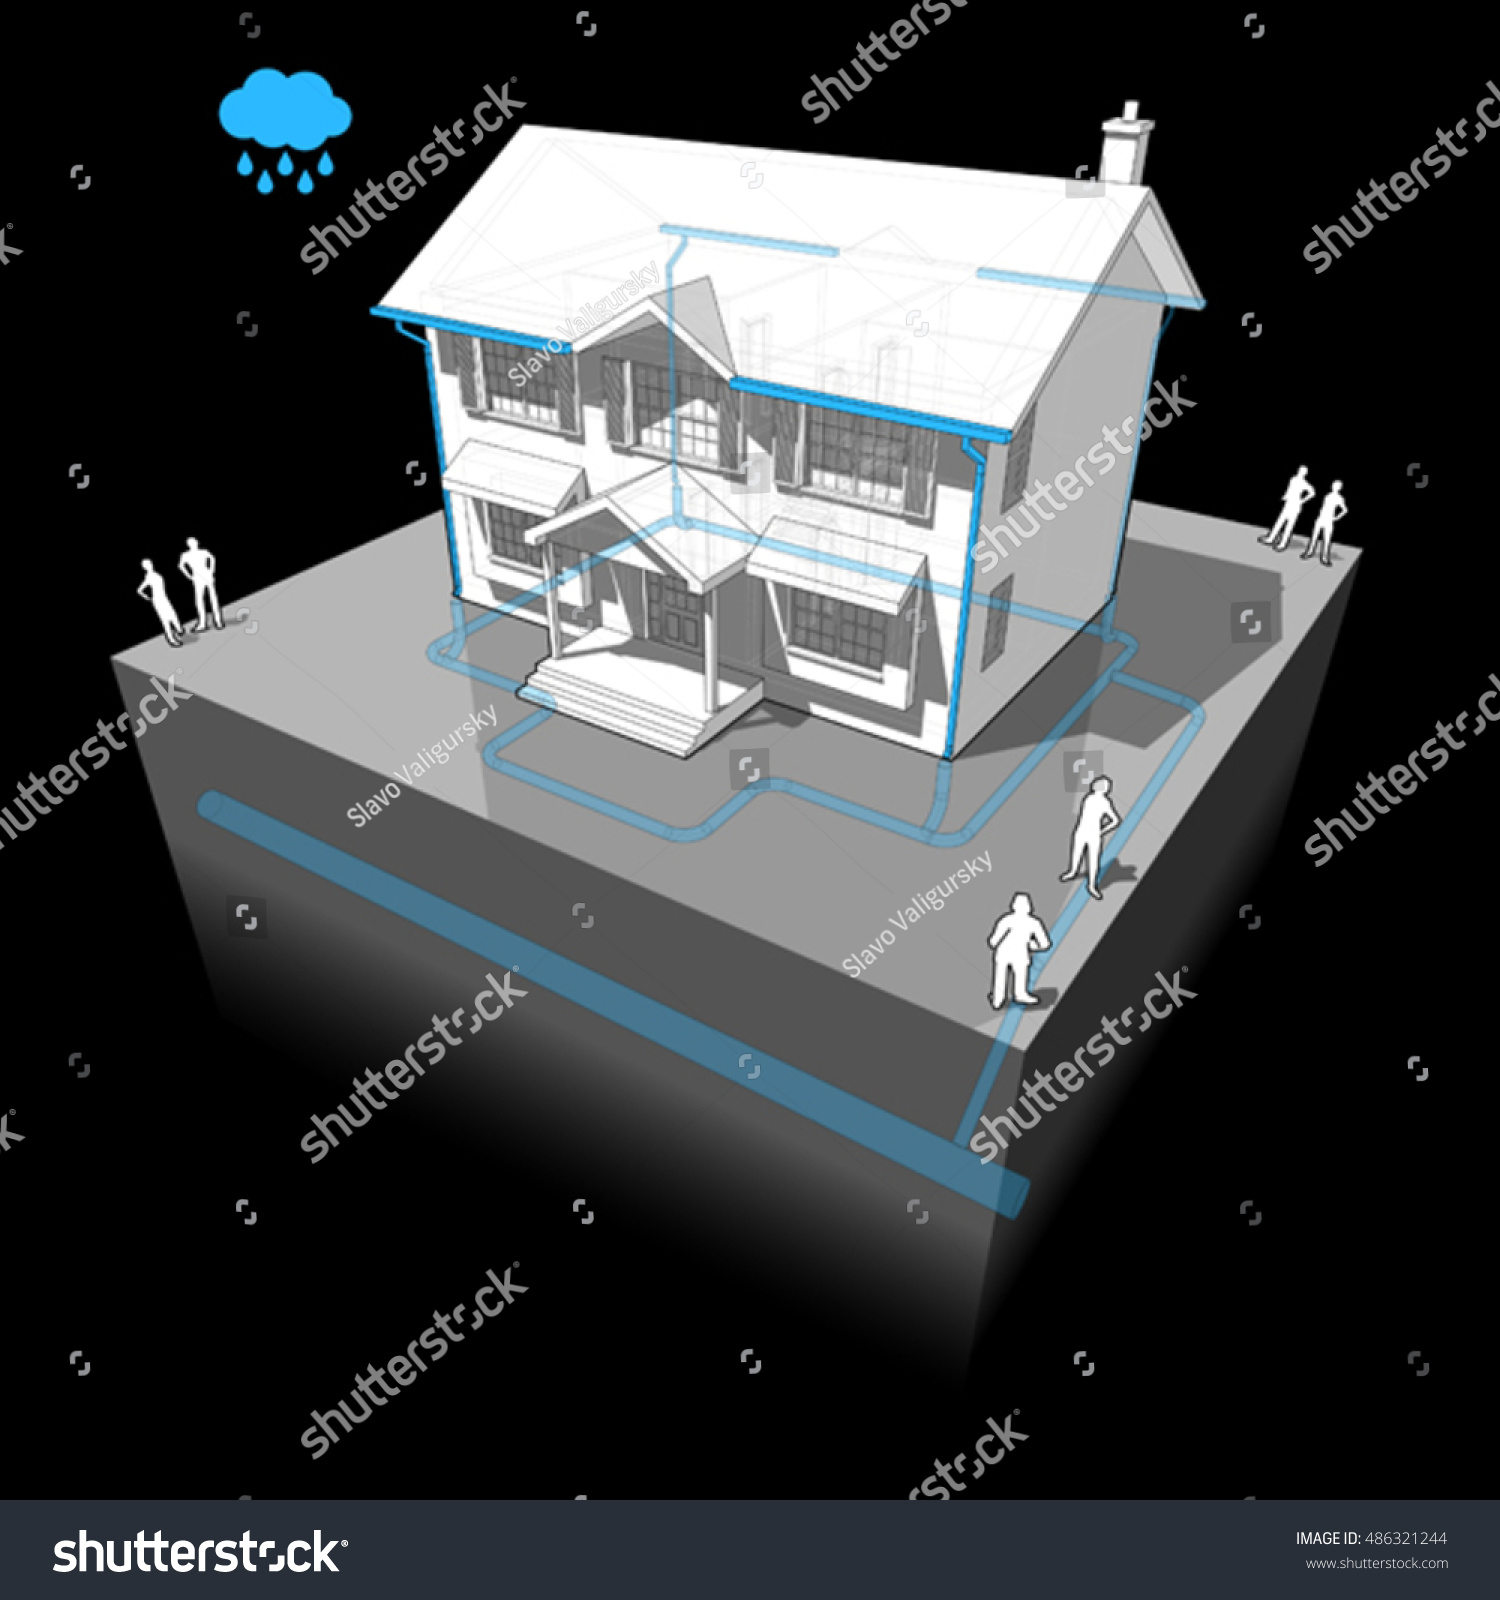 3d Illustration Of Diagram Of A Classic Colonial House